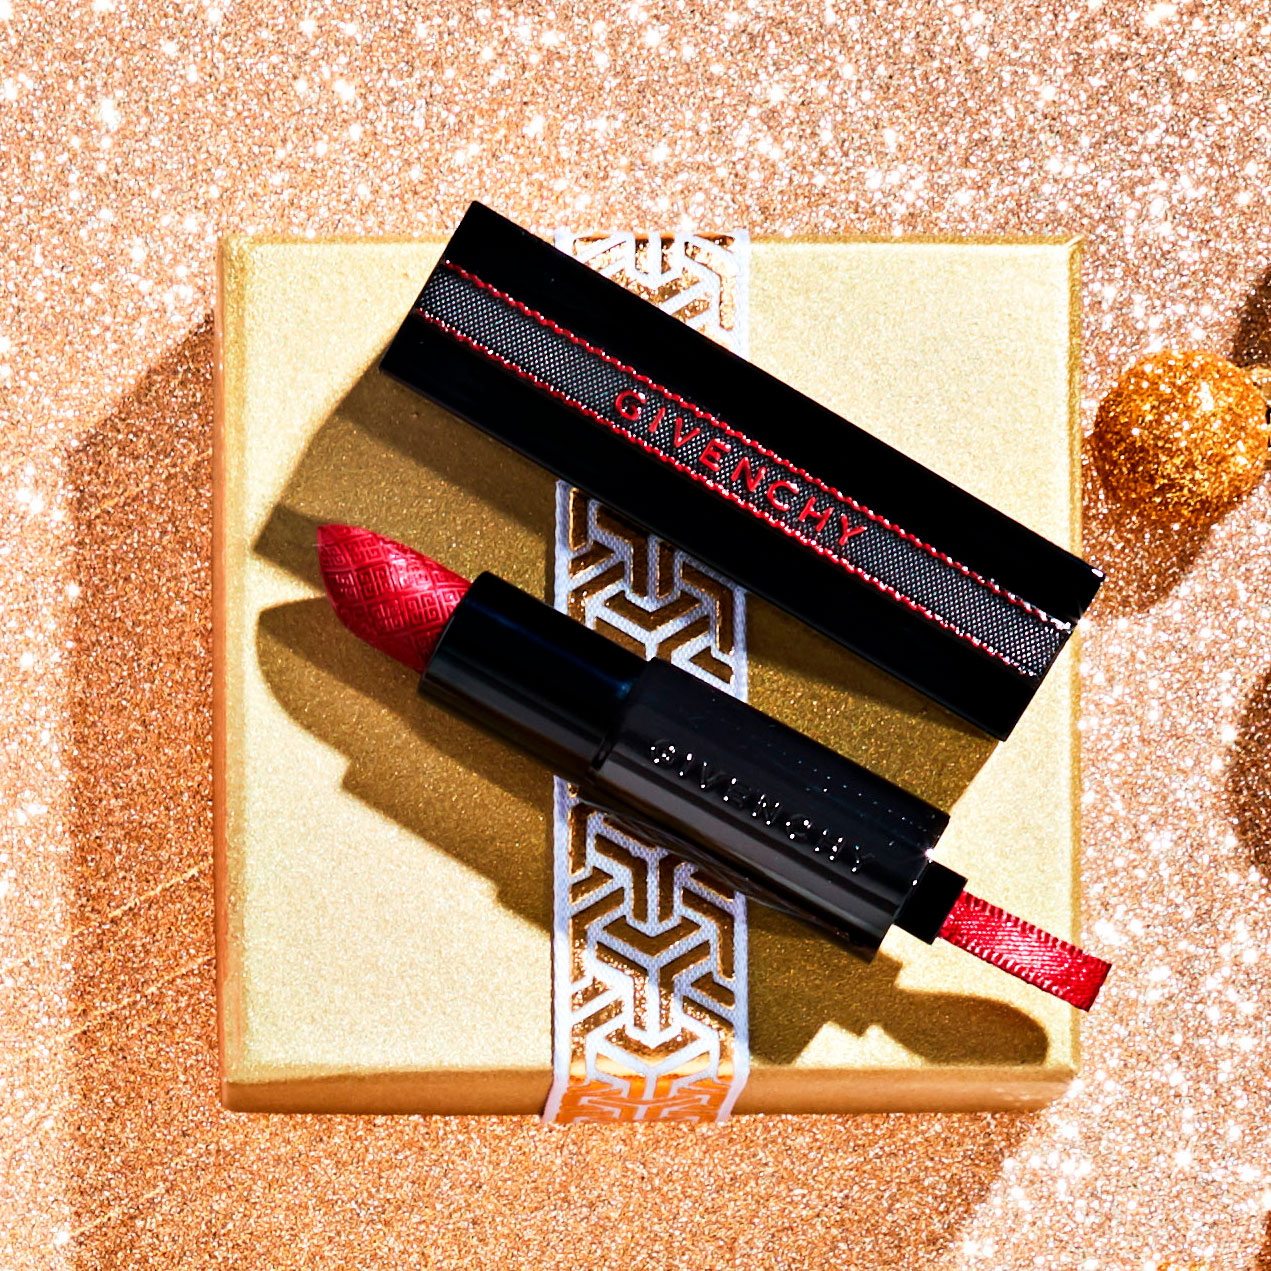 Givenchy Rouge Interdit Limited Edition Satin Lipstick in  No. 27 Bold Red